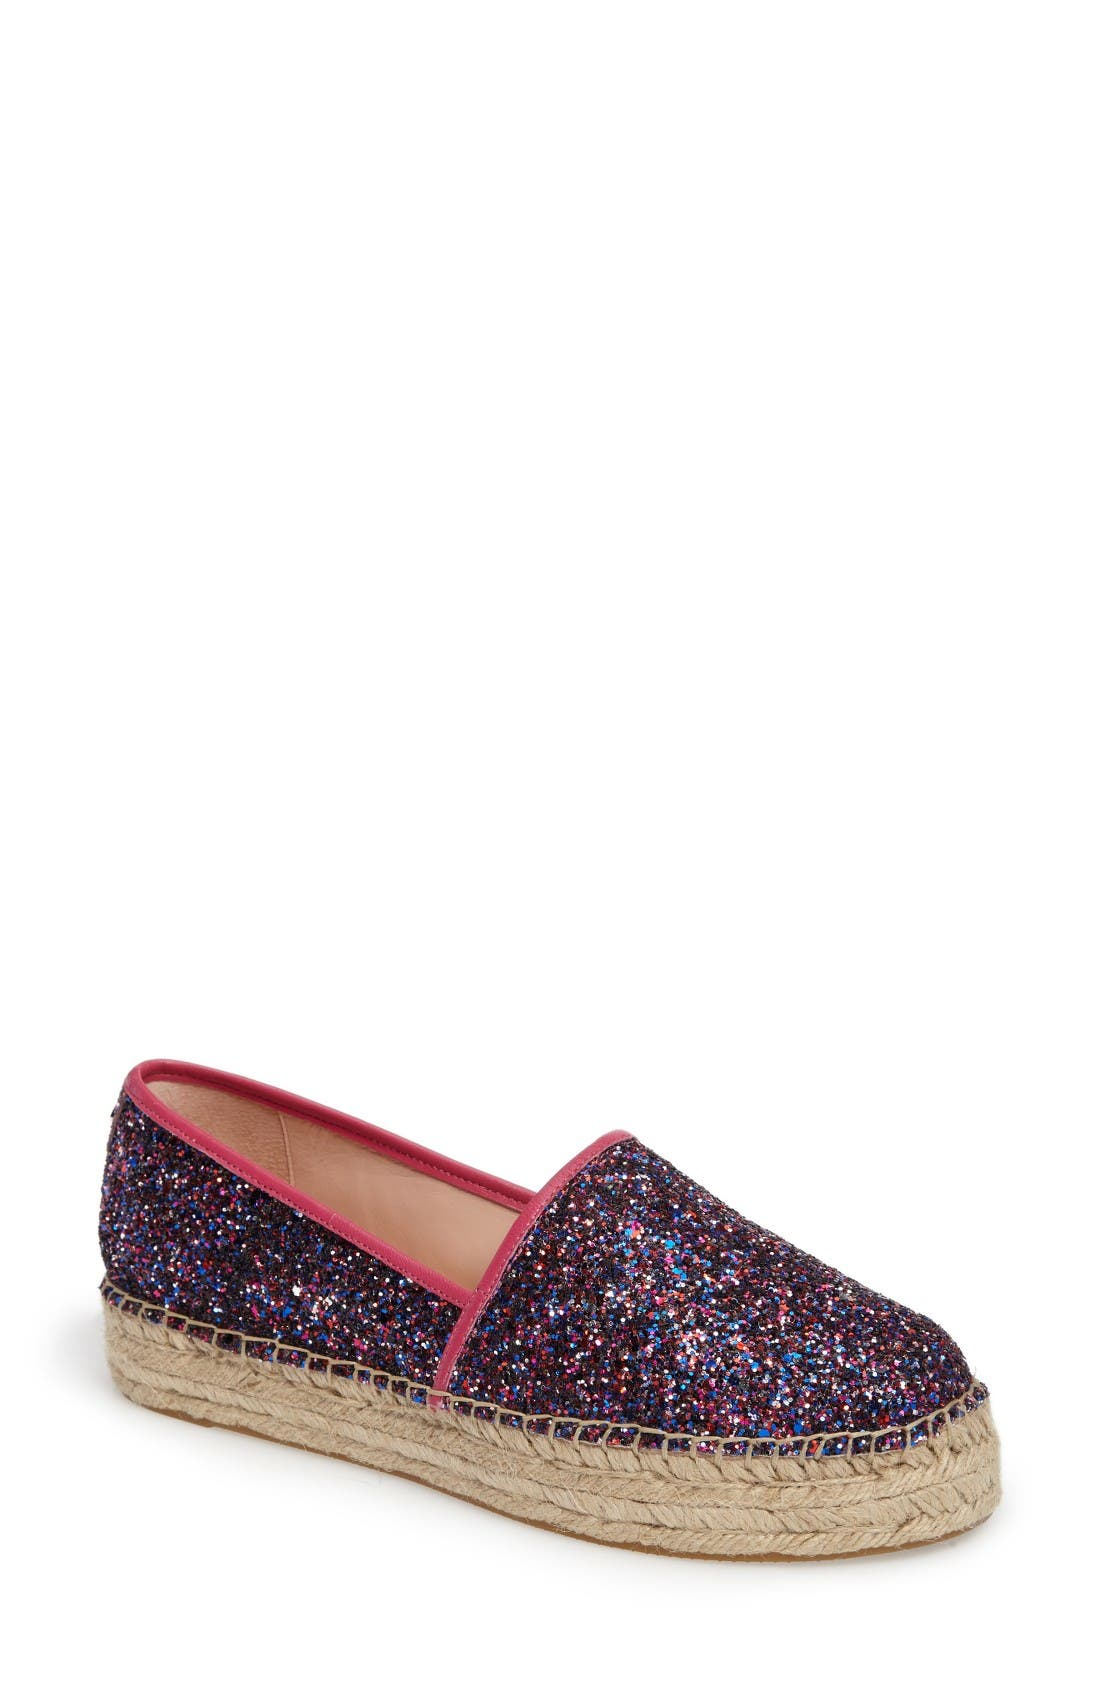 'linds' bow espadrille,                             Main thumbnail 1, color,                             Purple Glitter